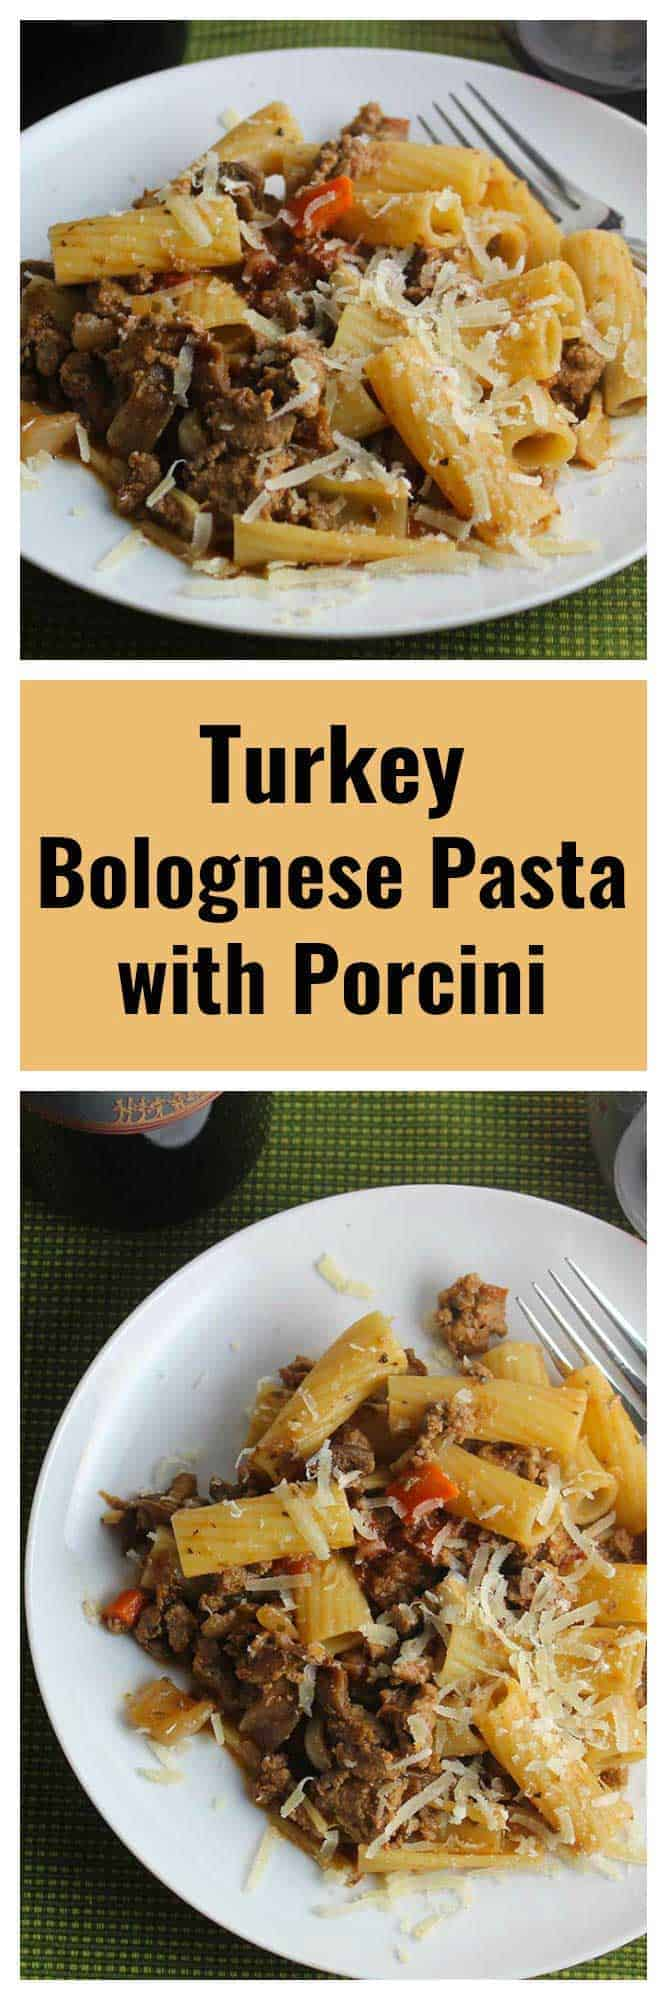 two images of turkey Bolognese pasta on a plate.